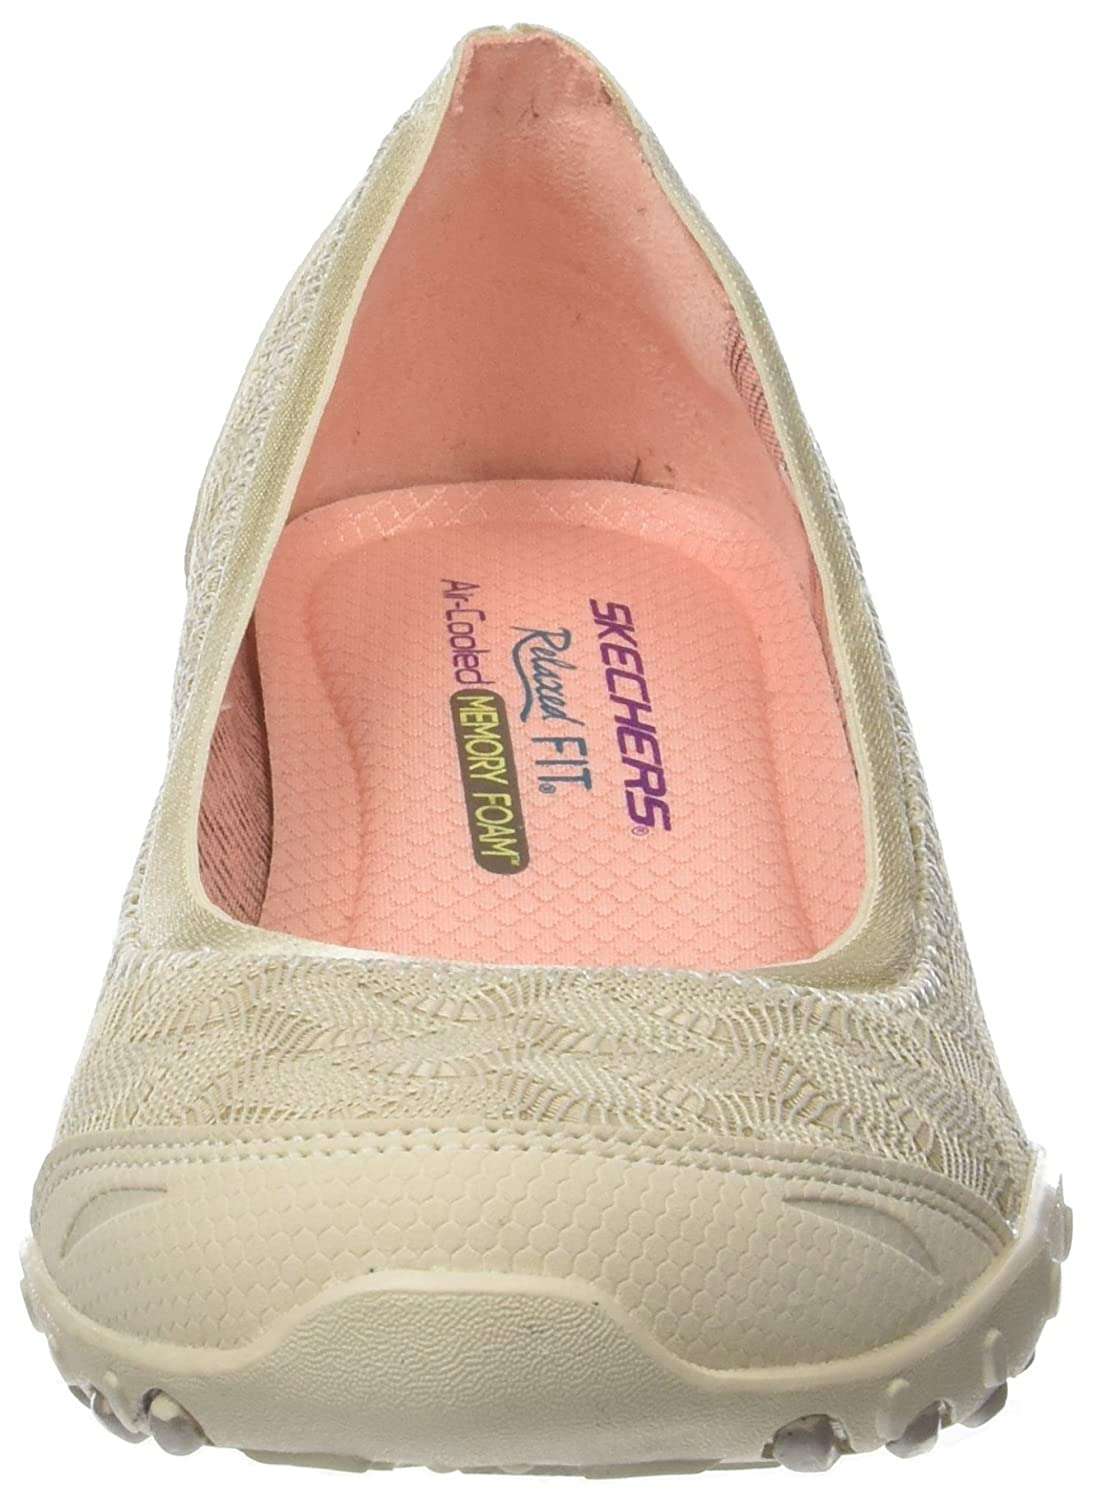 Skechers Savvy Play The Game, Ballerine Punta Chiusa Donna